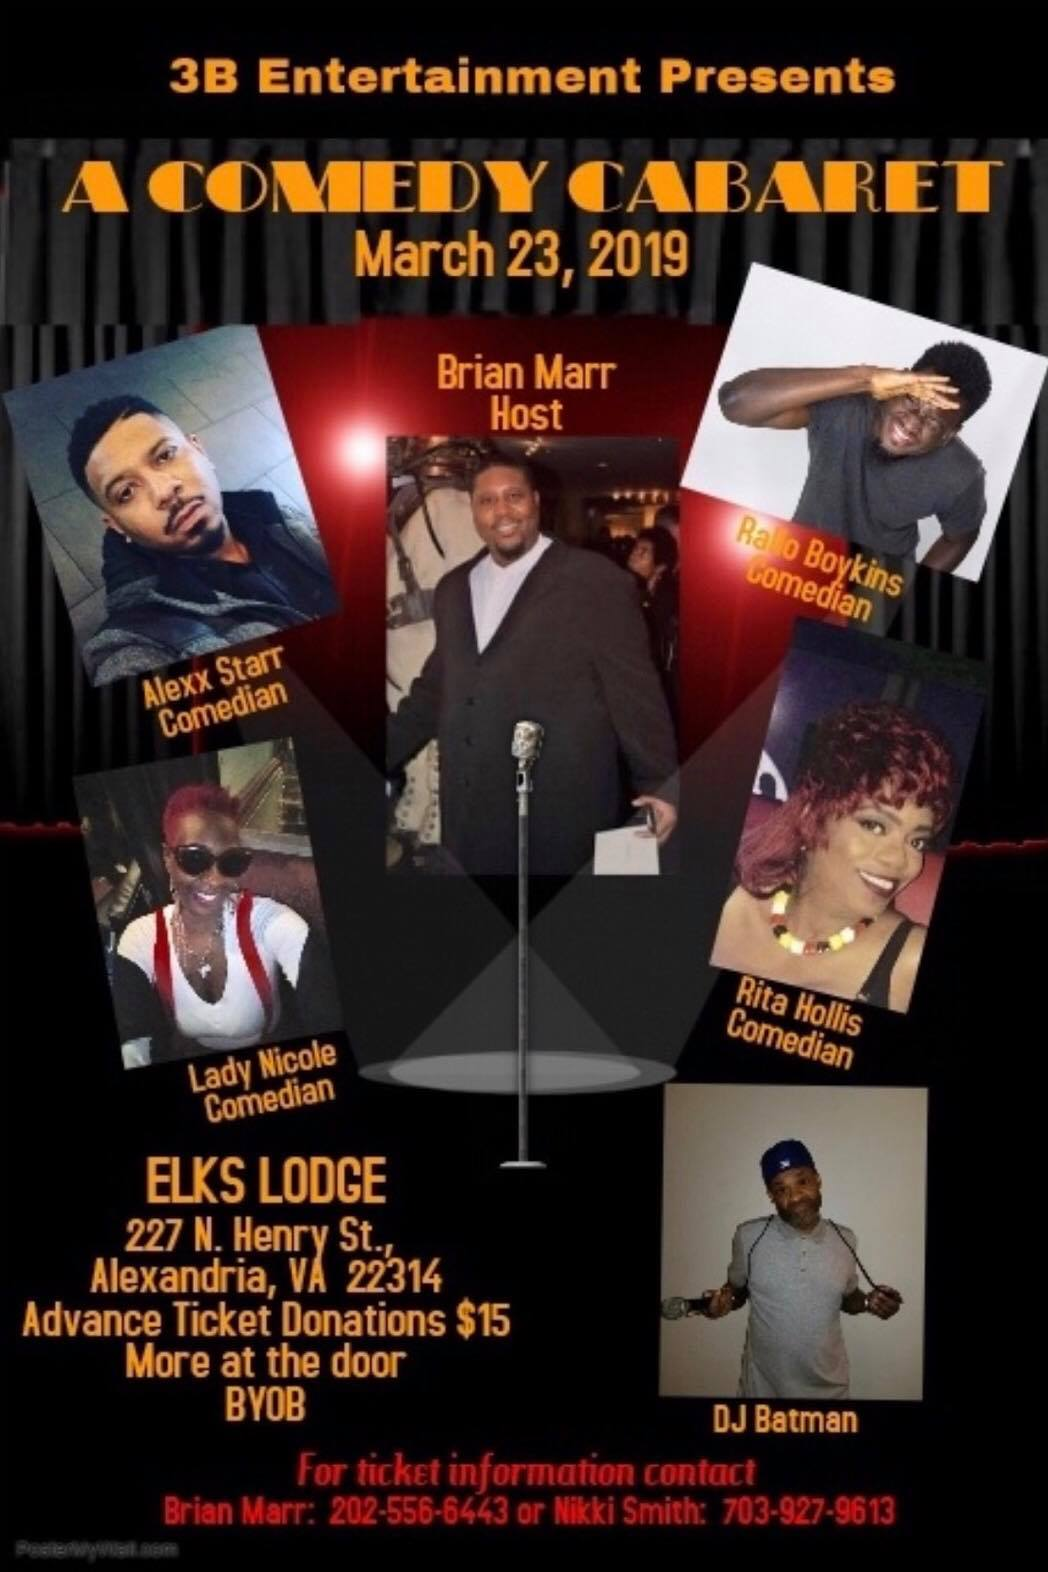 A Comedy Cabaret Saturday, March 23rd 8:oopm-9:3opm  Elk's Lodge | 227 N. Henry St. | Alexandria, VA 22314